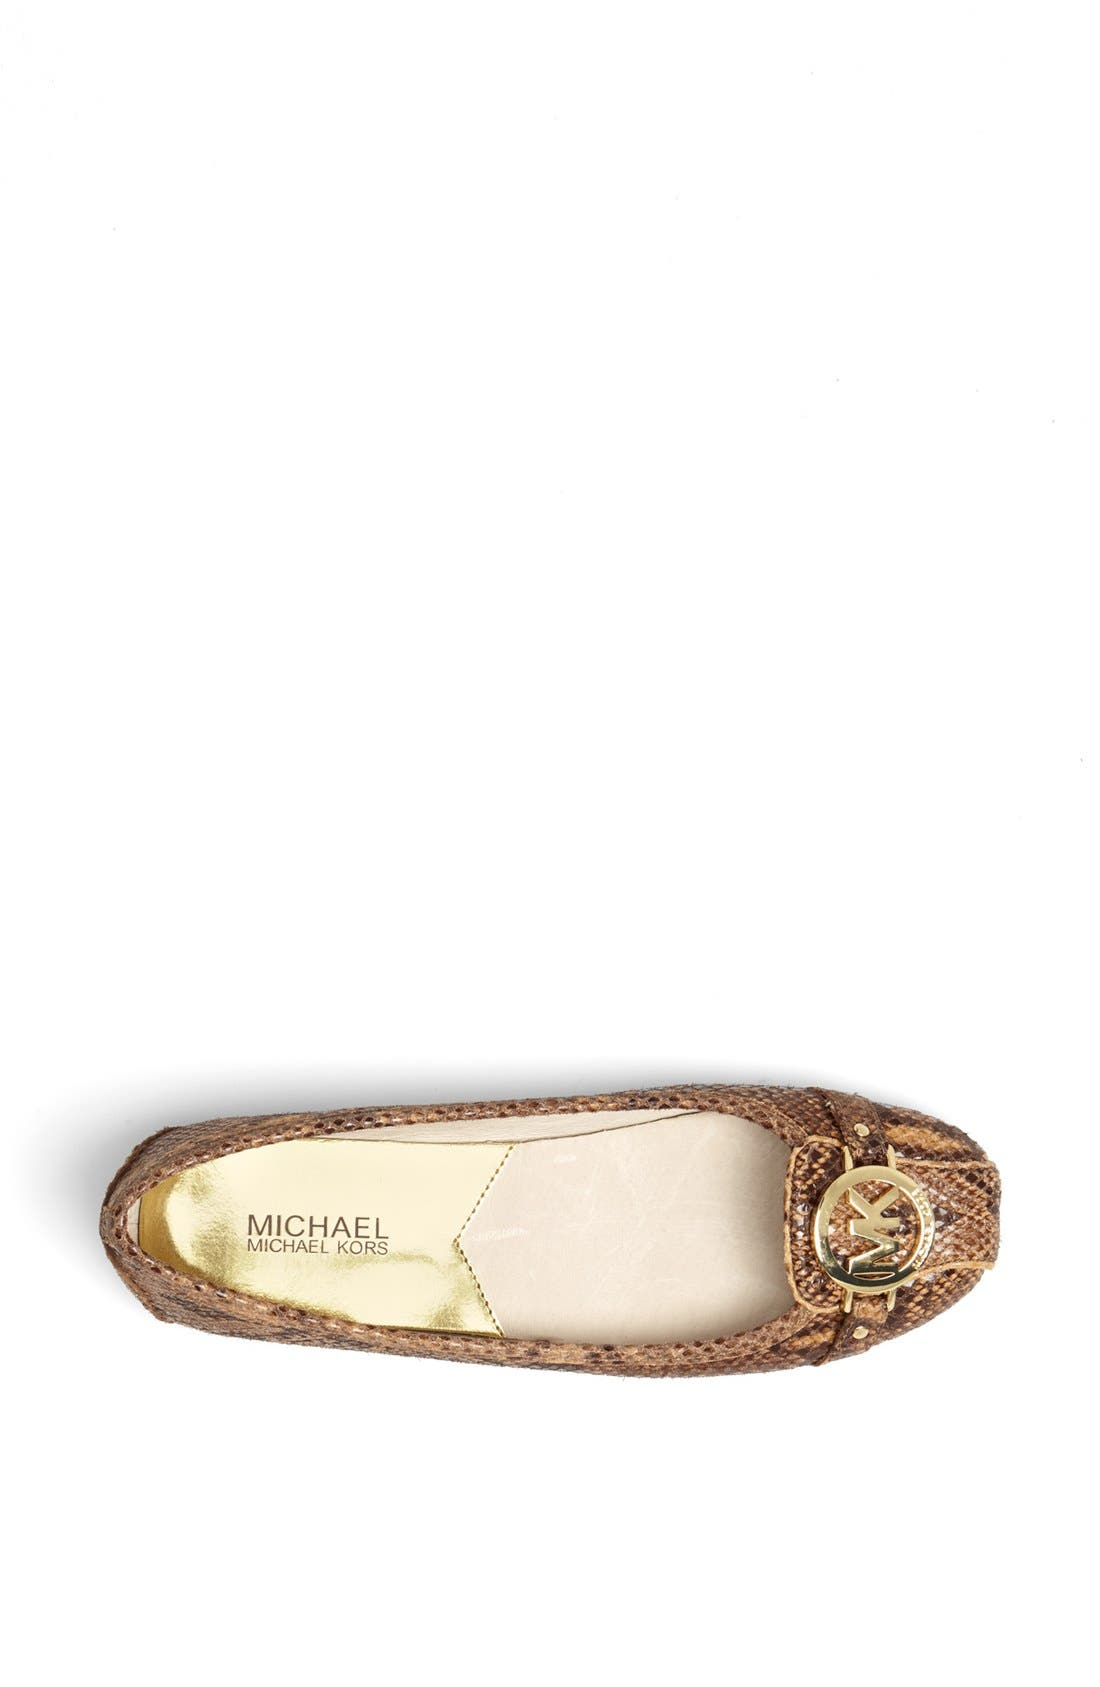 Alternate Image 3  - MICHAEL Michael Kors 'Fulton' Moccasin (Women)